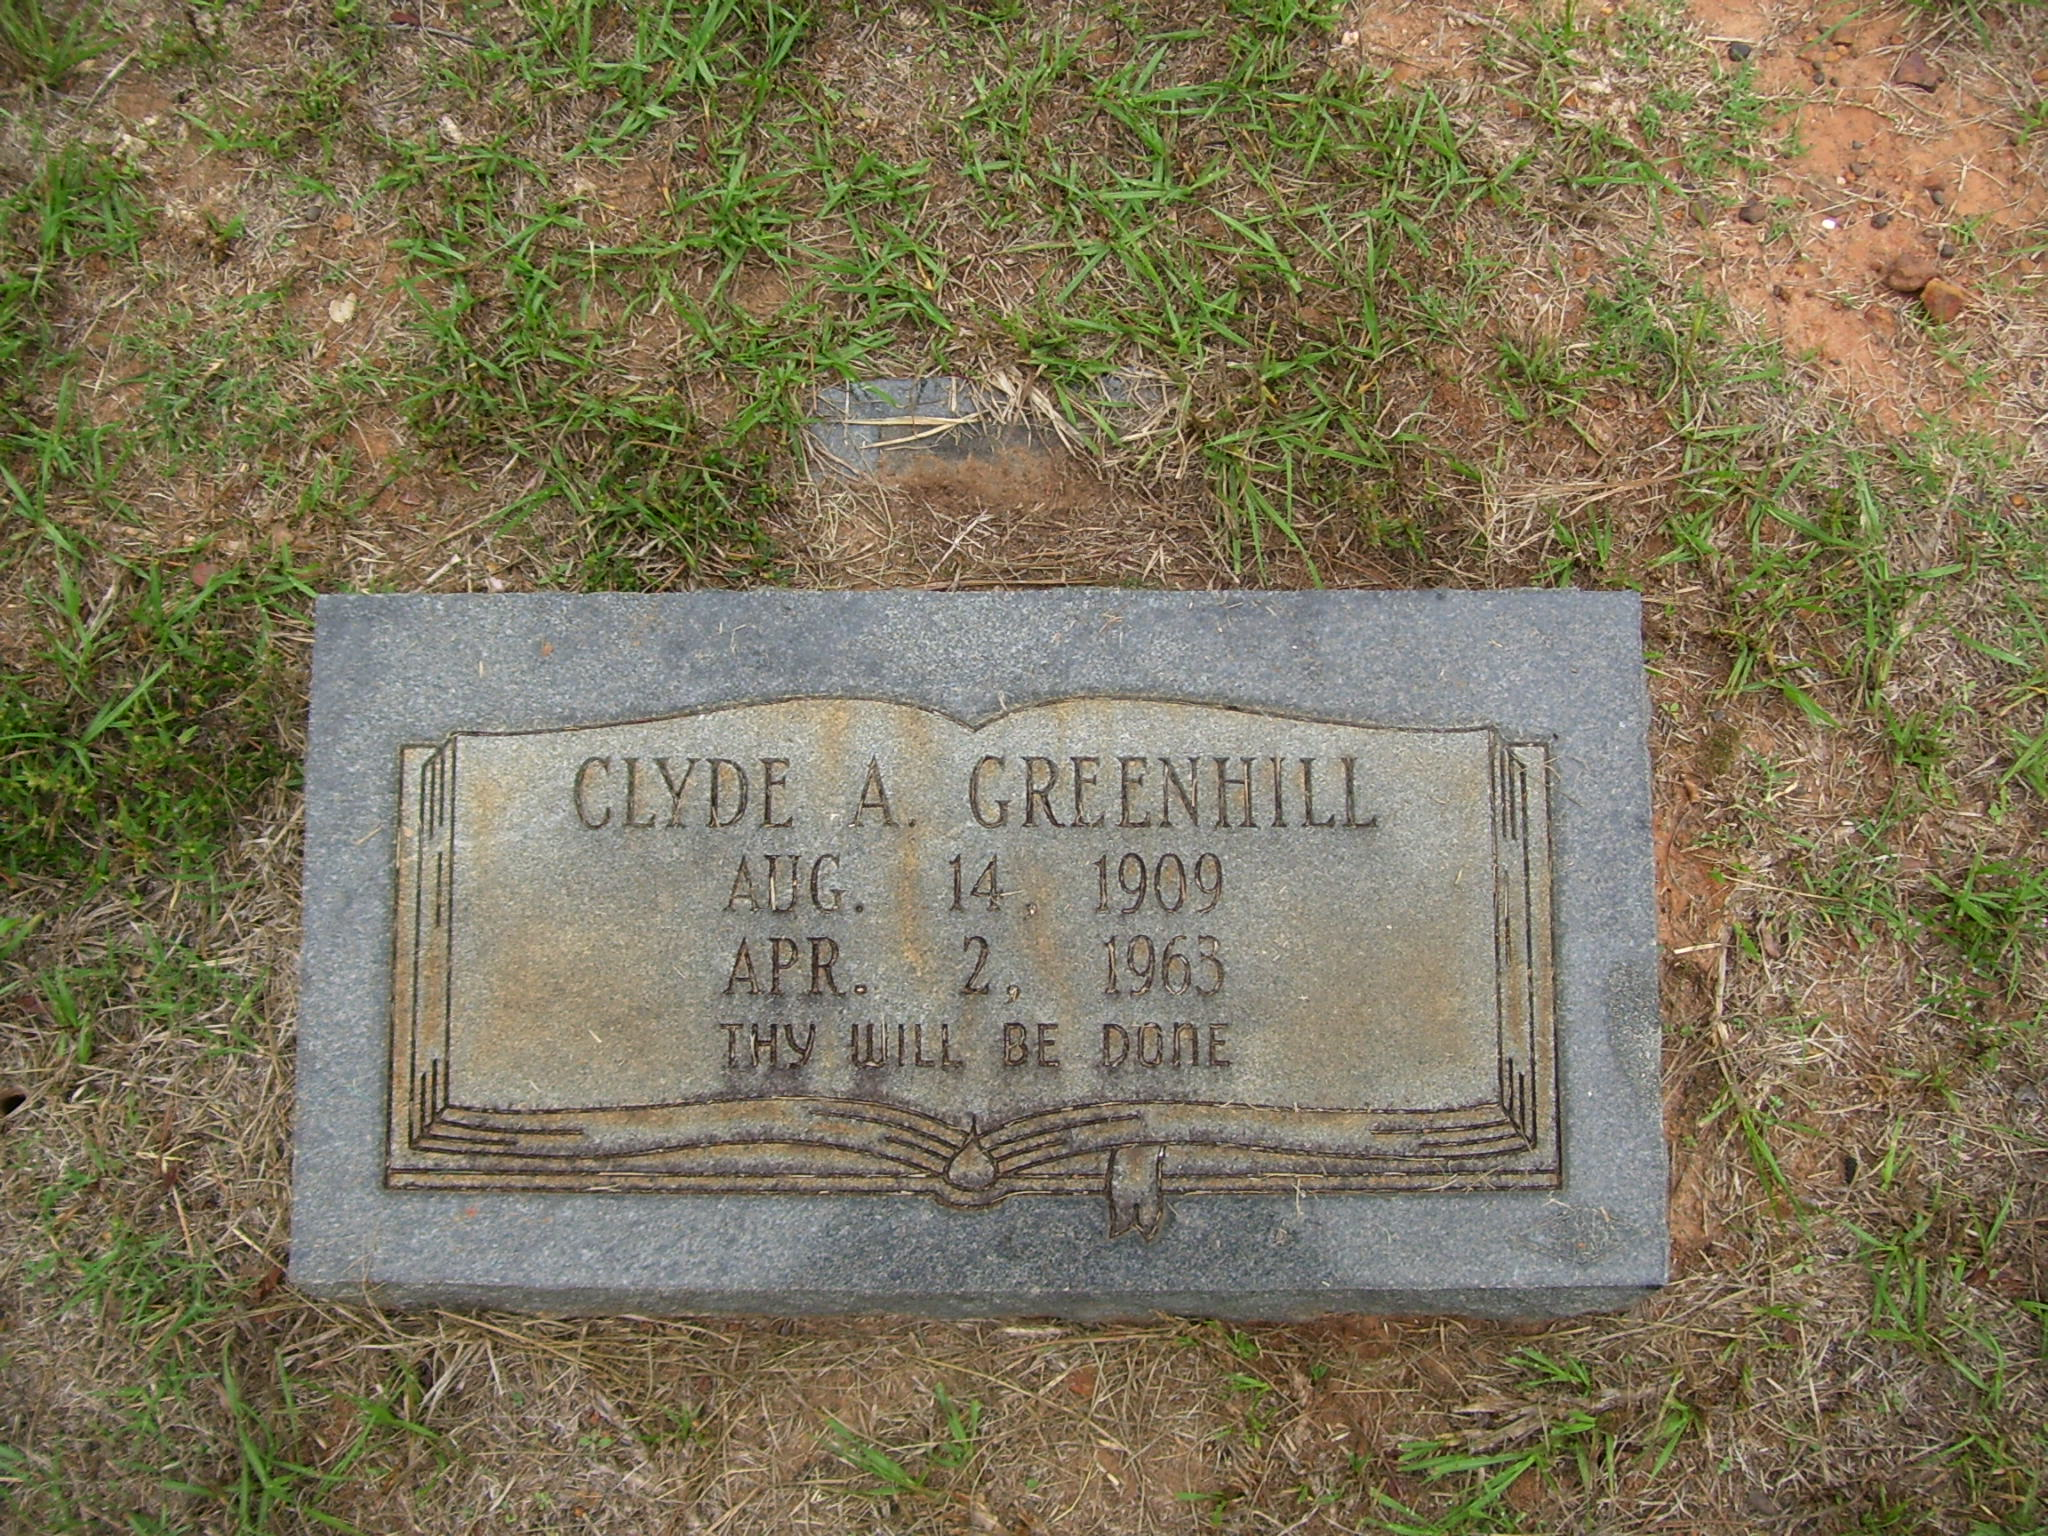 Clyde Atkins Greenhill